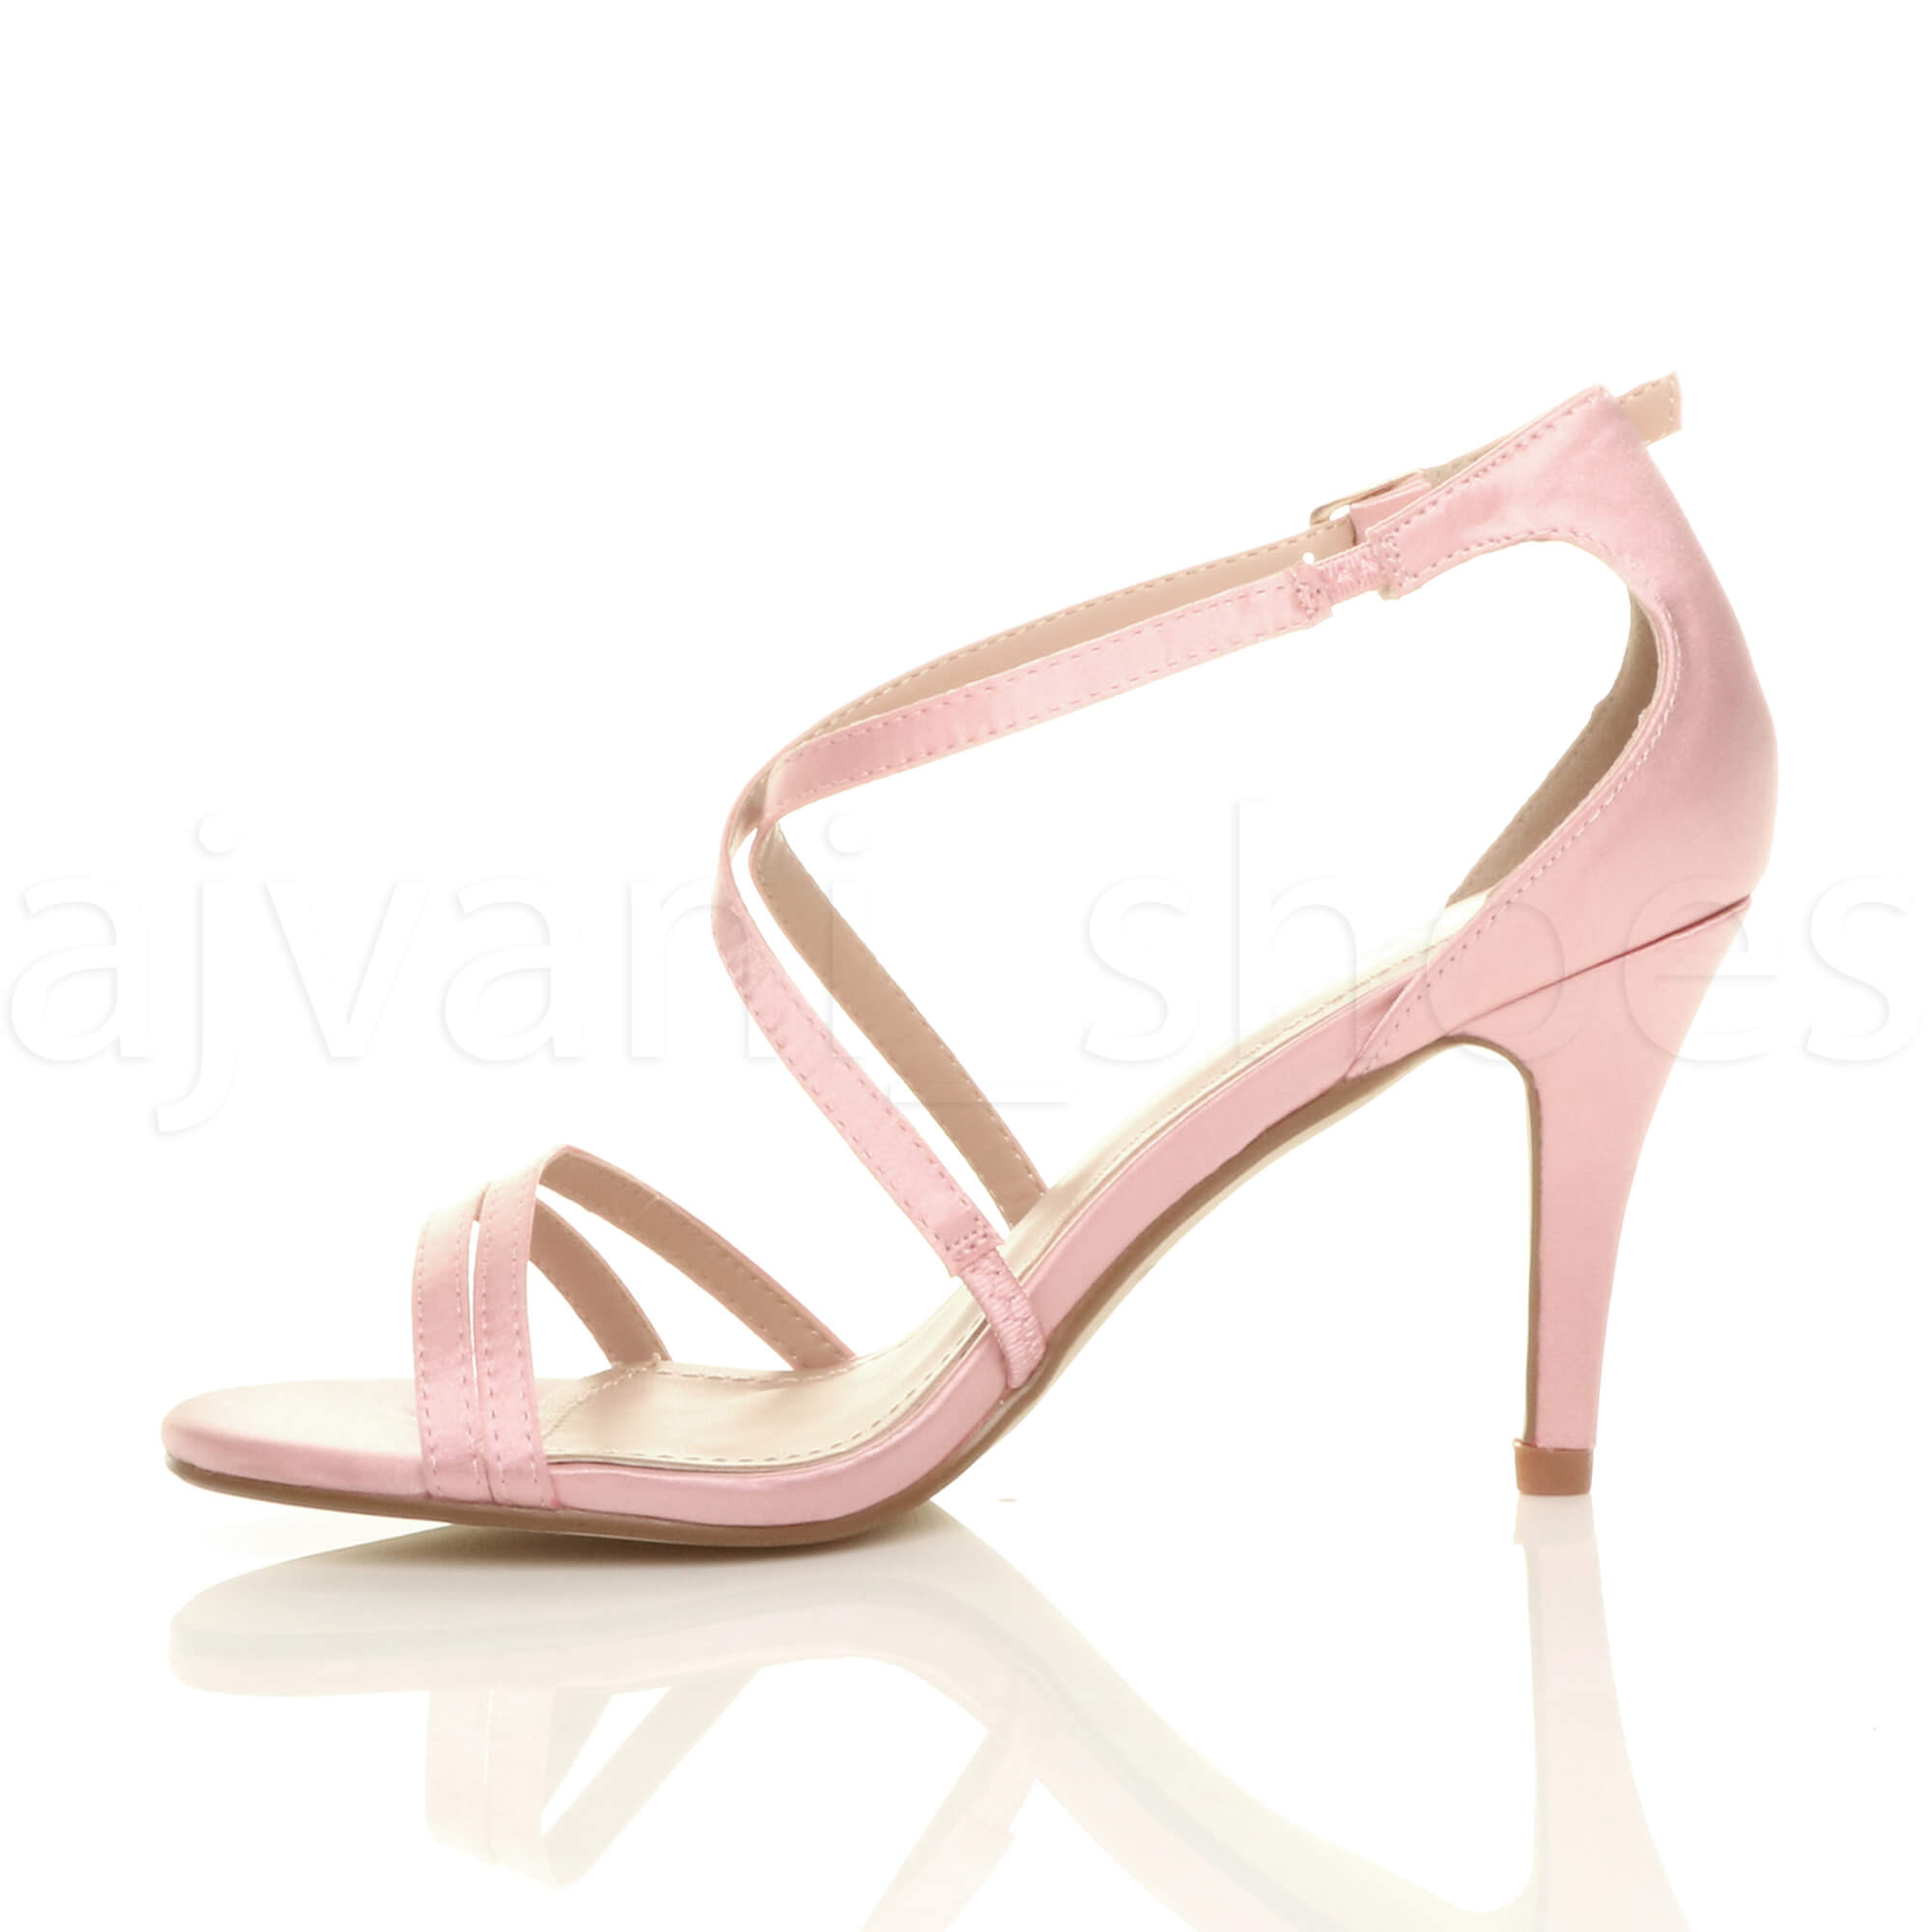 WOMENS-LADIES-MID-HIGH-HEEL-STRAPPY-CROSSOVER-WEDDING-PROM-SANDALS-SHOES-SIZE thumbnail 4